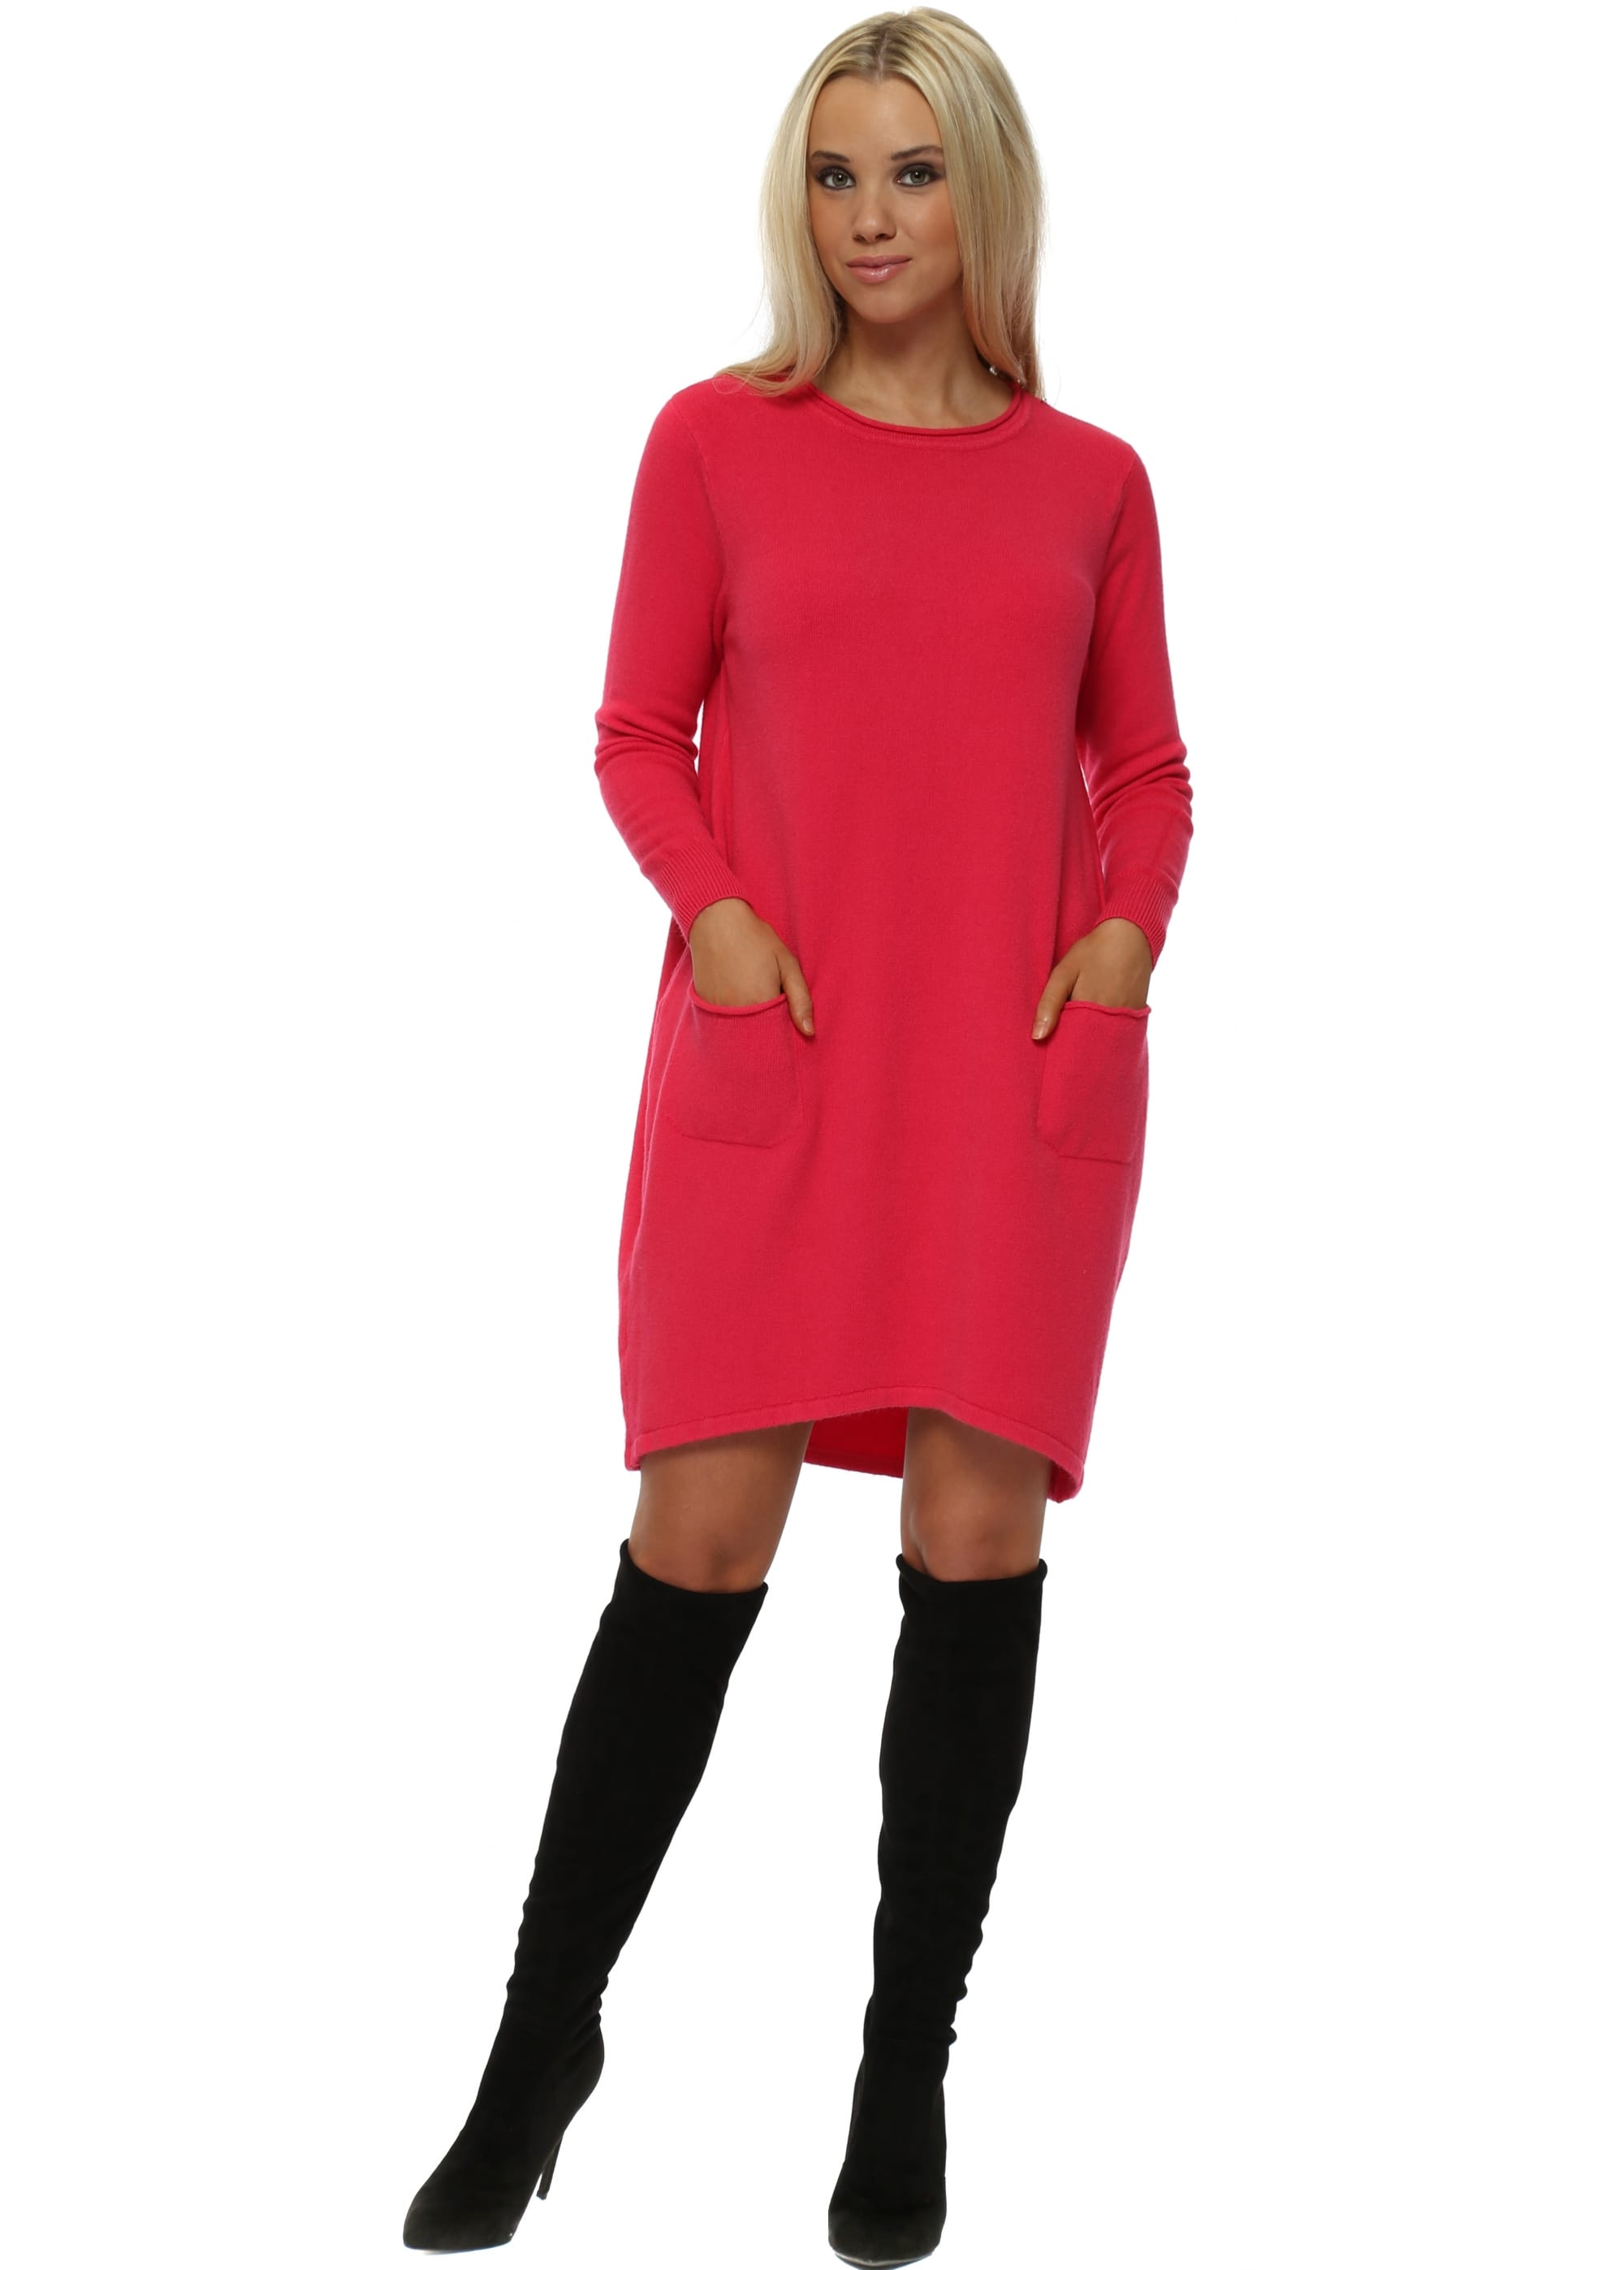 a80df26024d Sugar Babe Pink Long Sleeve Jumper Dress